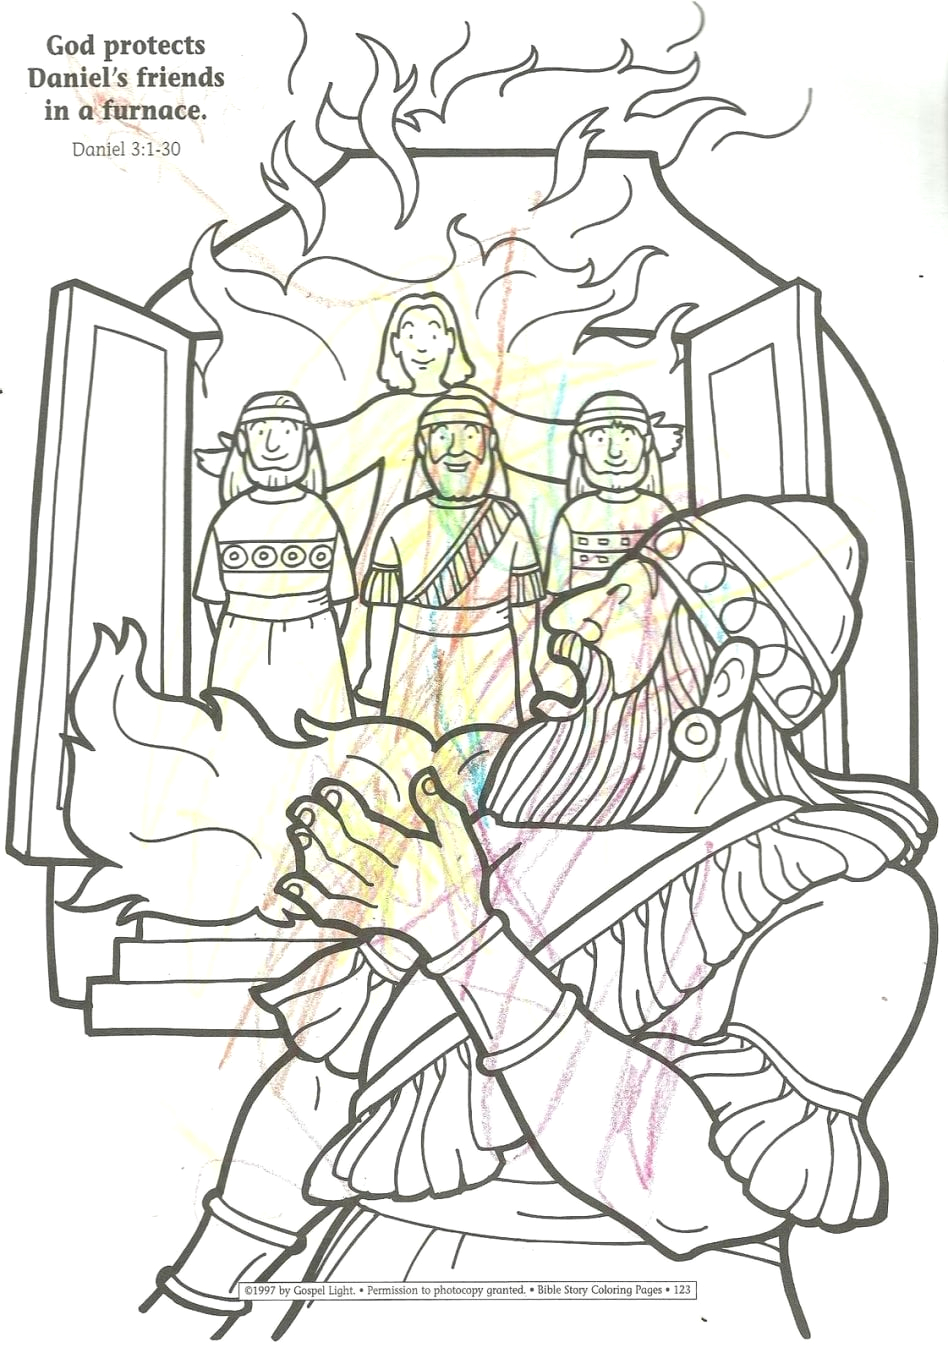 Coloring Page Of Shadrach Meshach and Abednego Shadrach Meshach and Abednego Coloring Page Neo Coloring